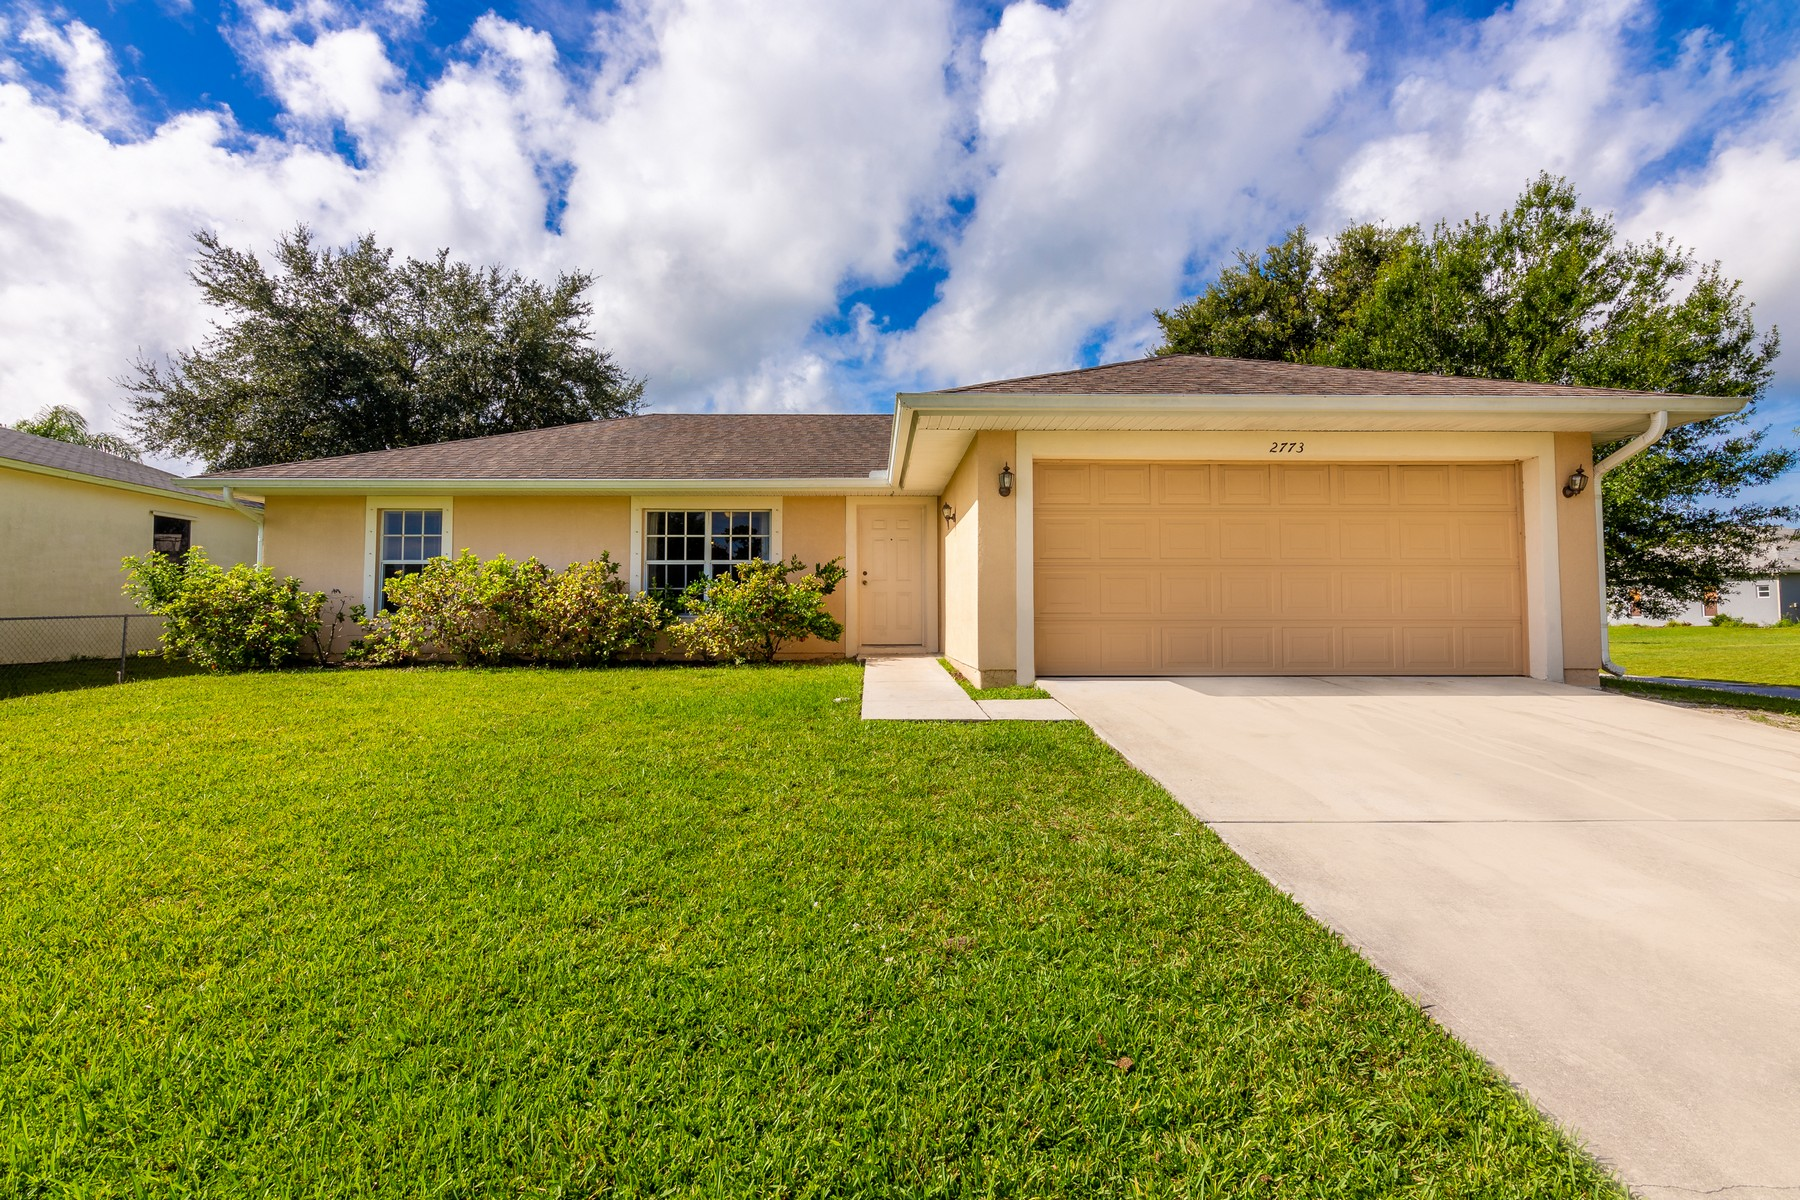 Single Family Homes for Active at Live the Florida Dream! 2773 San Filippo Dr SE Palm Bay, Florida 32909 United States